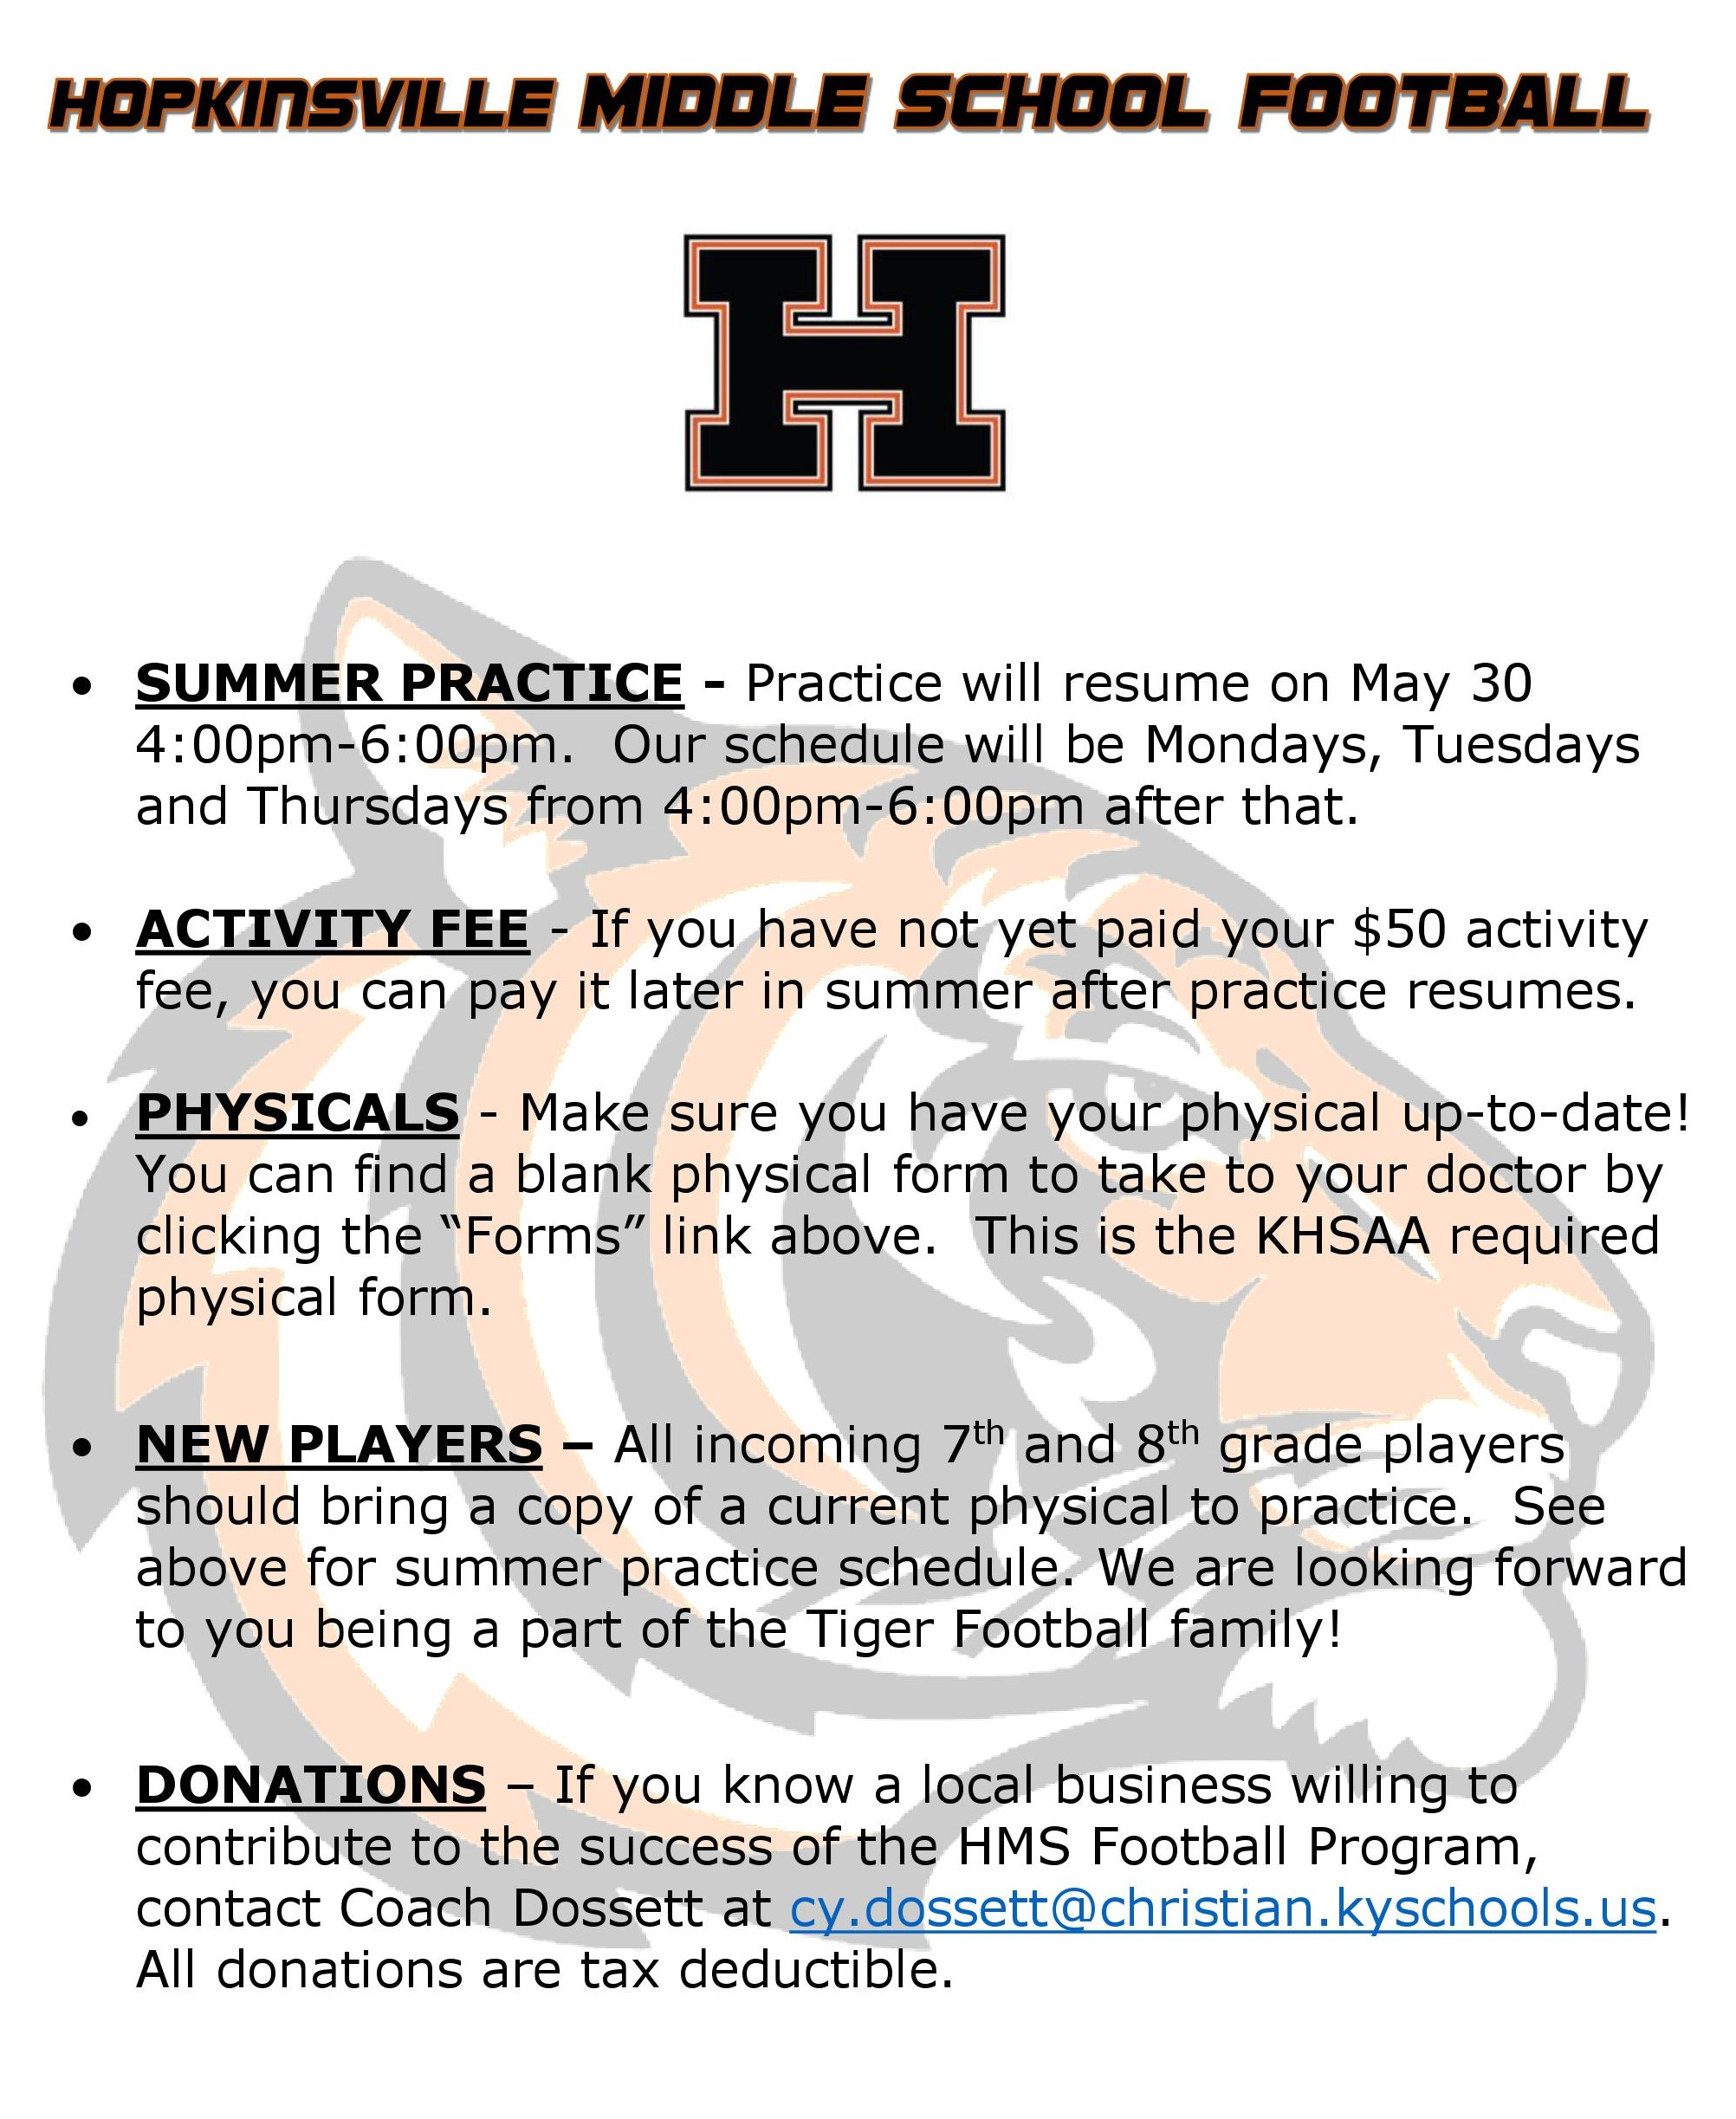 Hopkinsville Middle School: Sports - Football